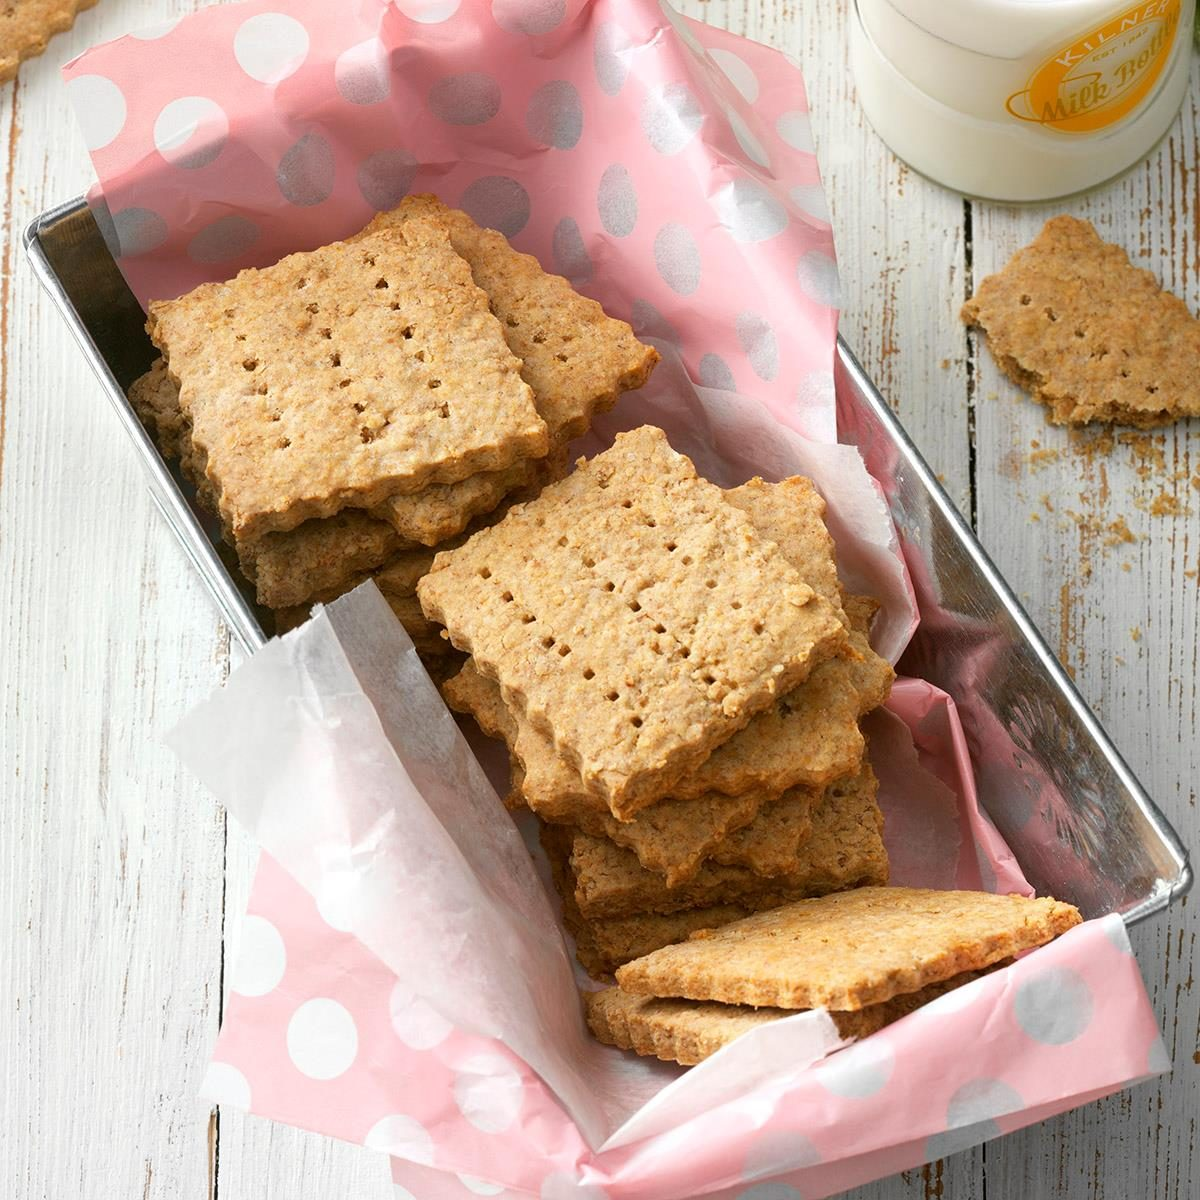 Homemade Honey Grahams